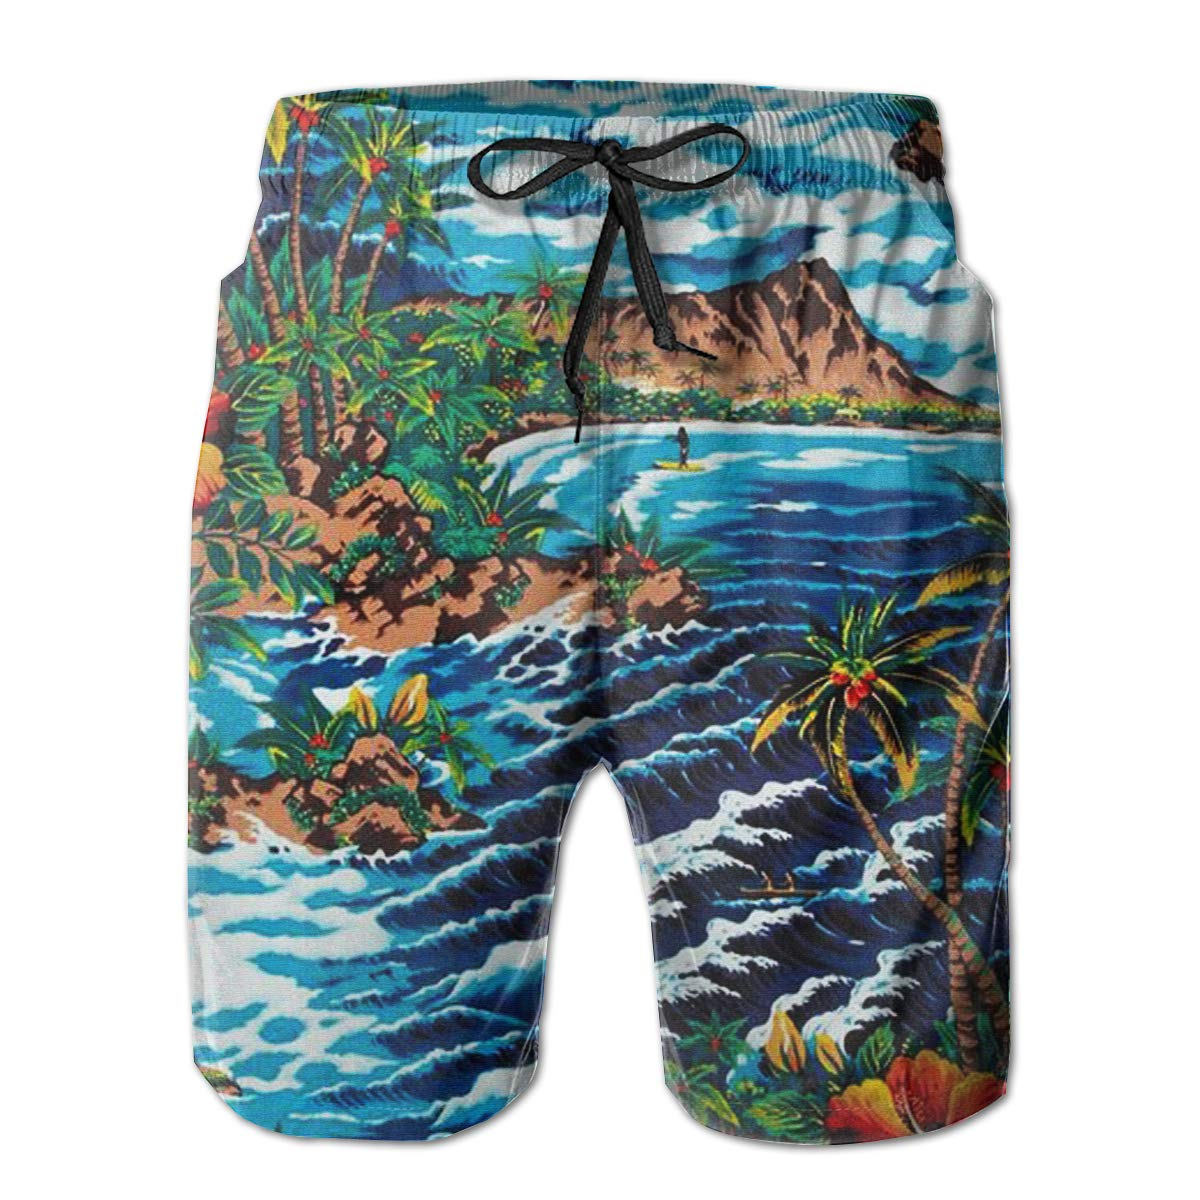 FASUWAVE Mens Swim Trunks Hawaii Watercolor Painting Quick Dry Beach Board Shorts with Mesh Lining